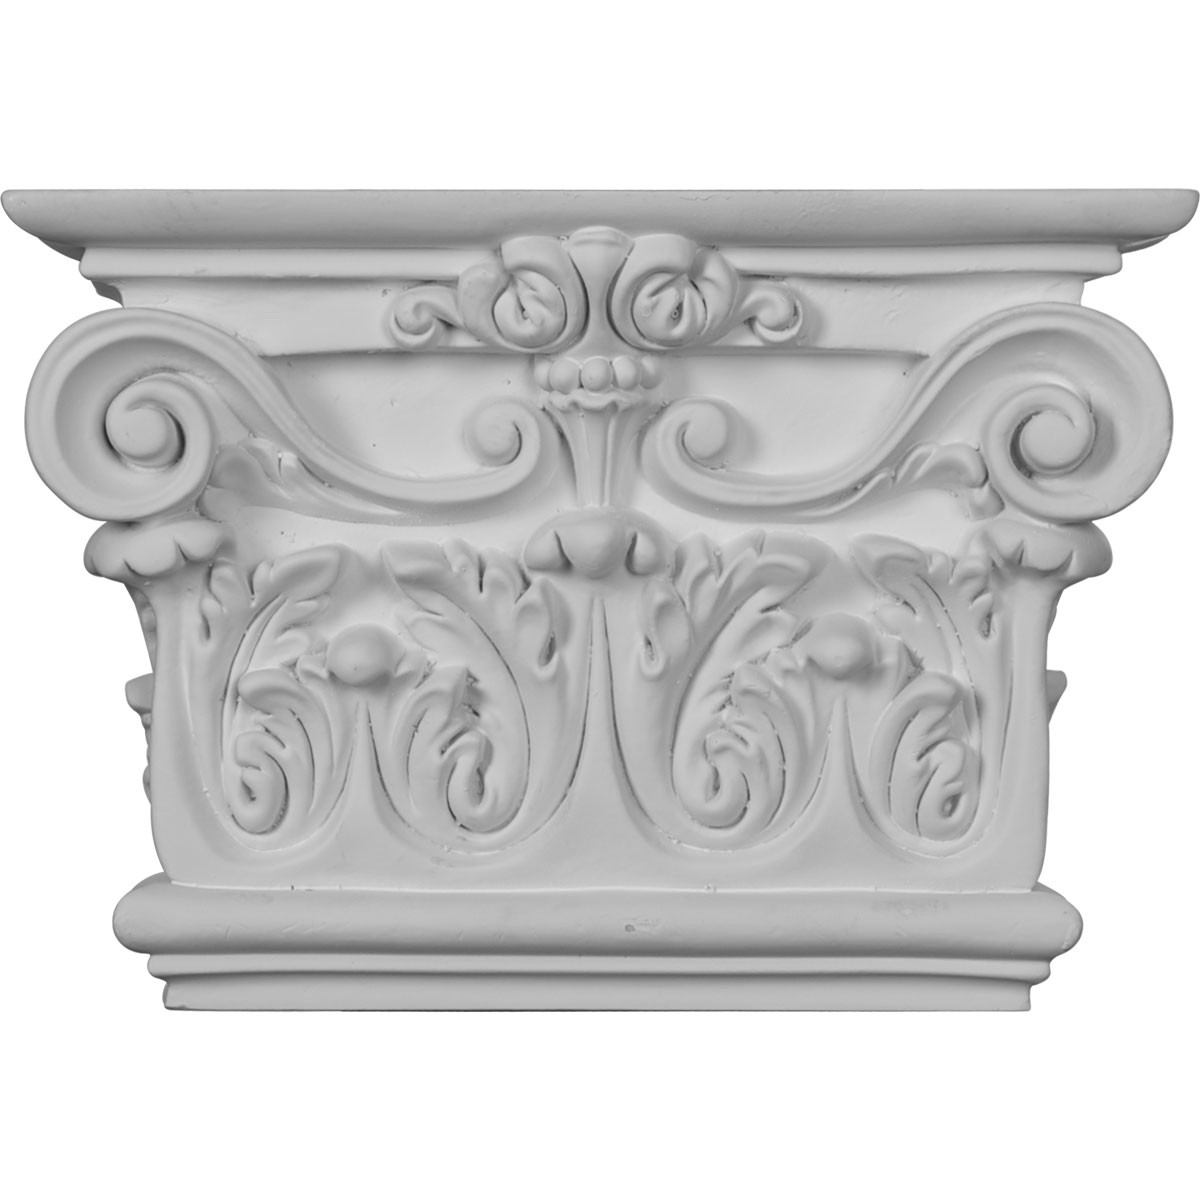 """EM-CAP07X10X03AR - 10 3/8""""W x 7 1/2""""H x 2 5/8""""P Artis Onlay Capital (Fits Pilasters up to 7 3/4""""W x 1 3/8""""D)"""